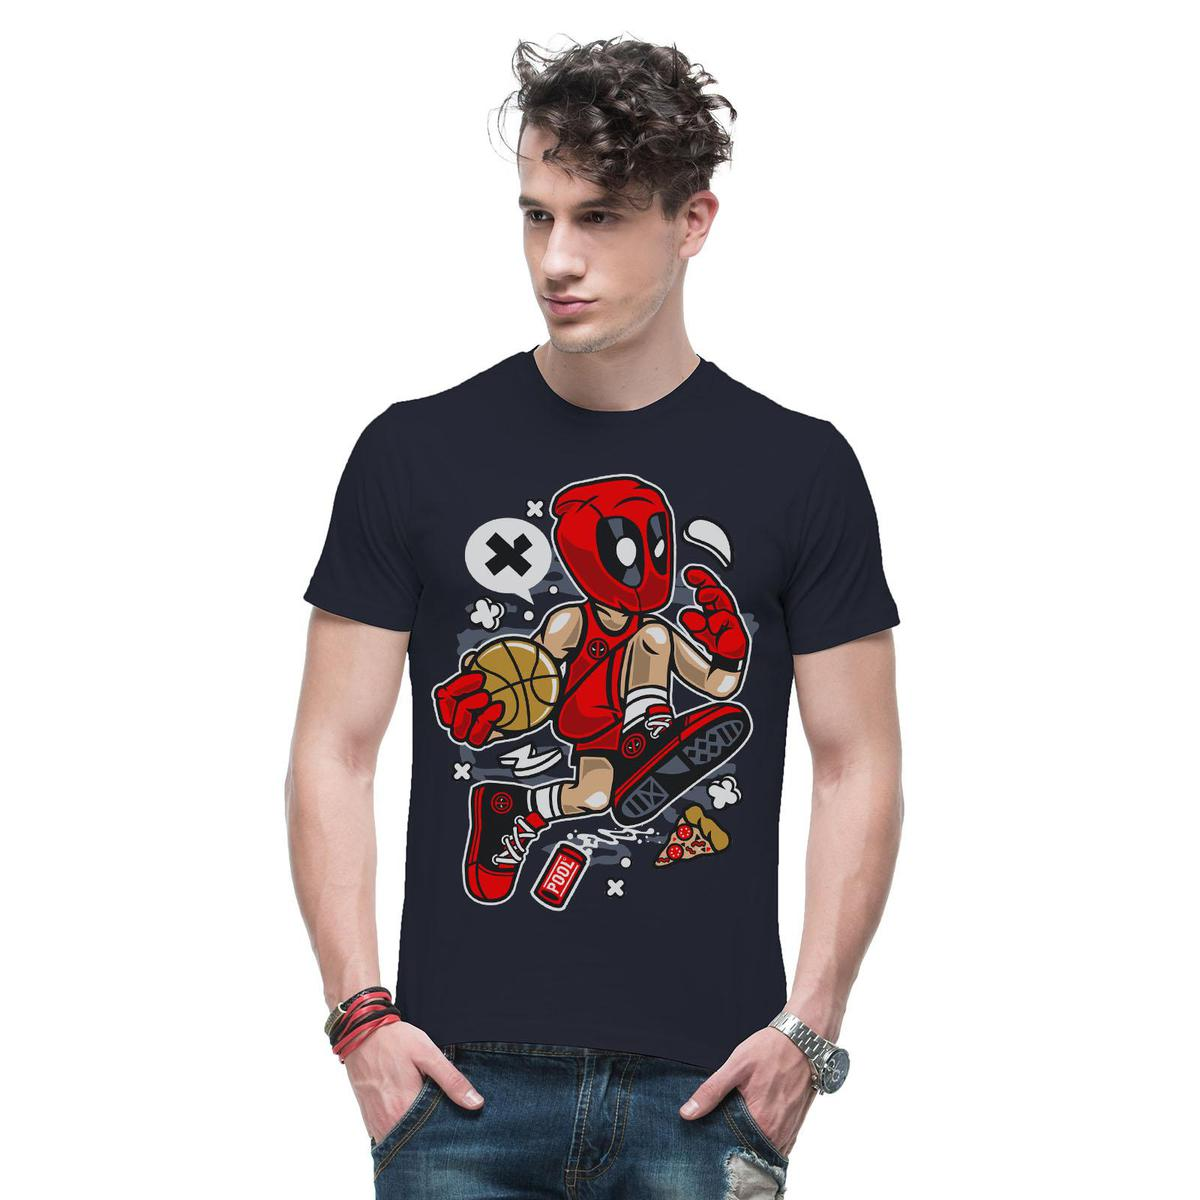 THREADCURRY - Navy Blue Colored Basketball Superhero   Comic Funny Spoof Character Cotton Printed Creative T-shirt for Men